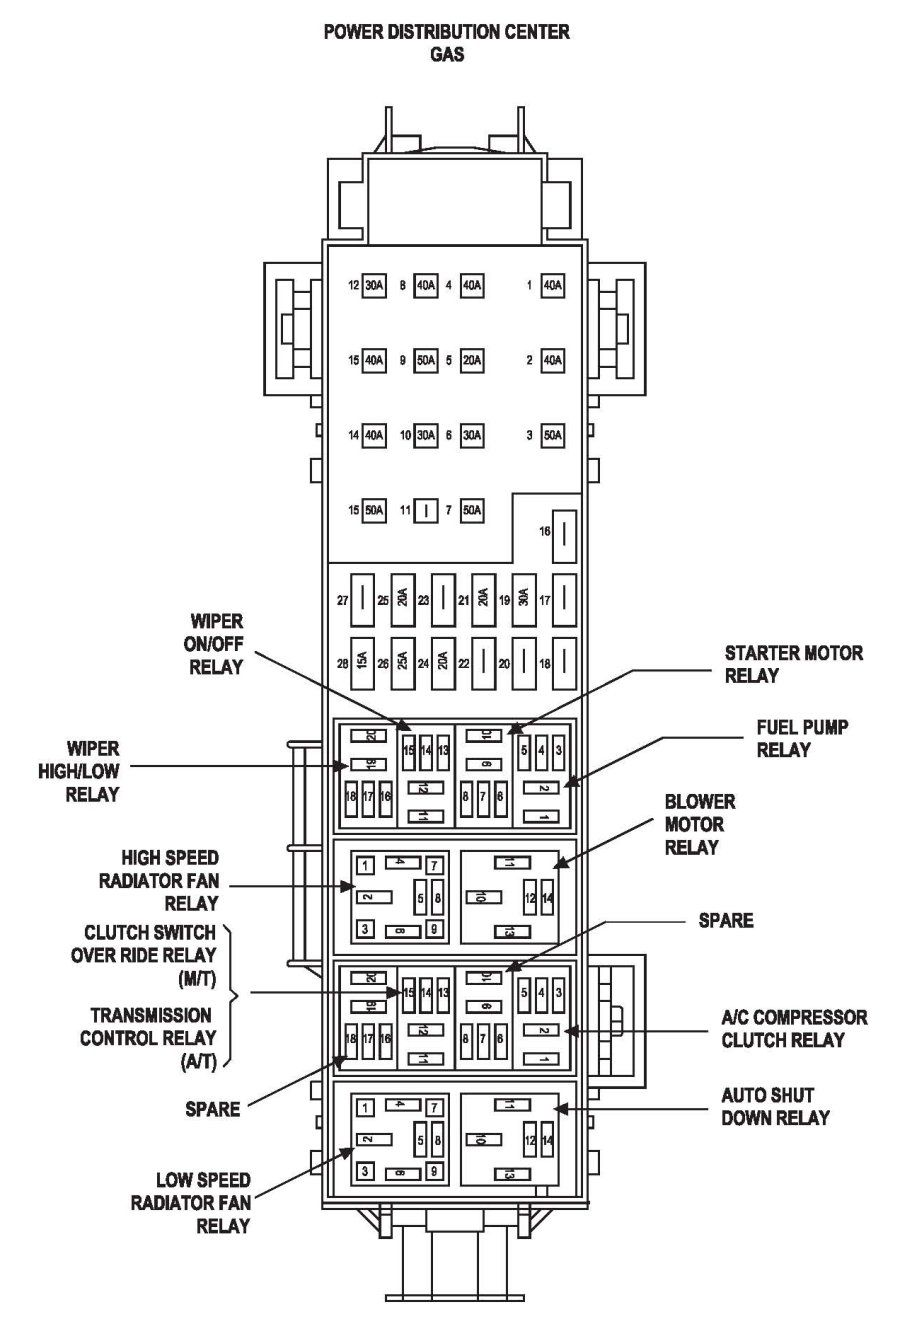 small resolution of jeep liberty fuse box diagram image details jeep liberty 94 jeep grand cherokee fuse box diagram jeep fuse diagram